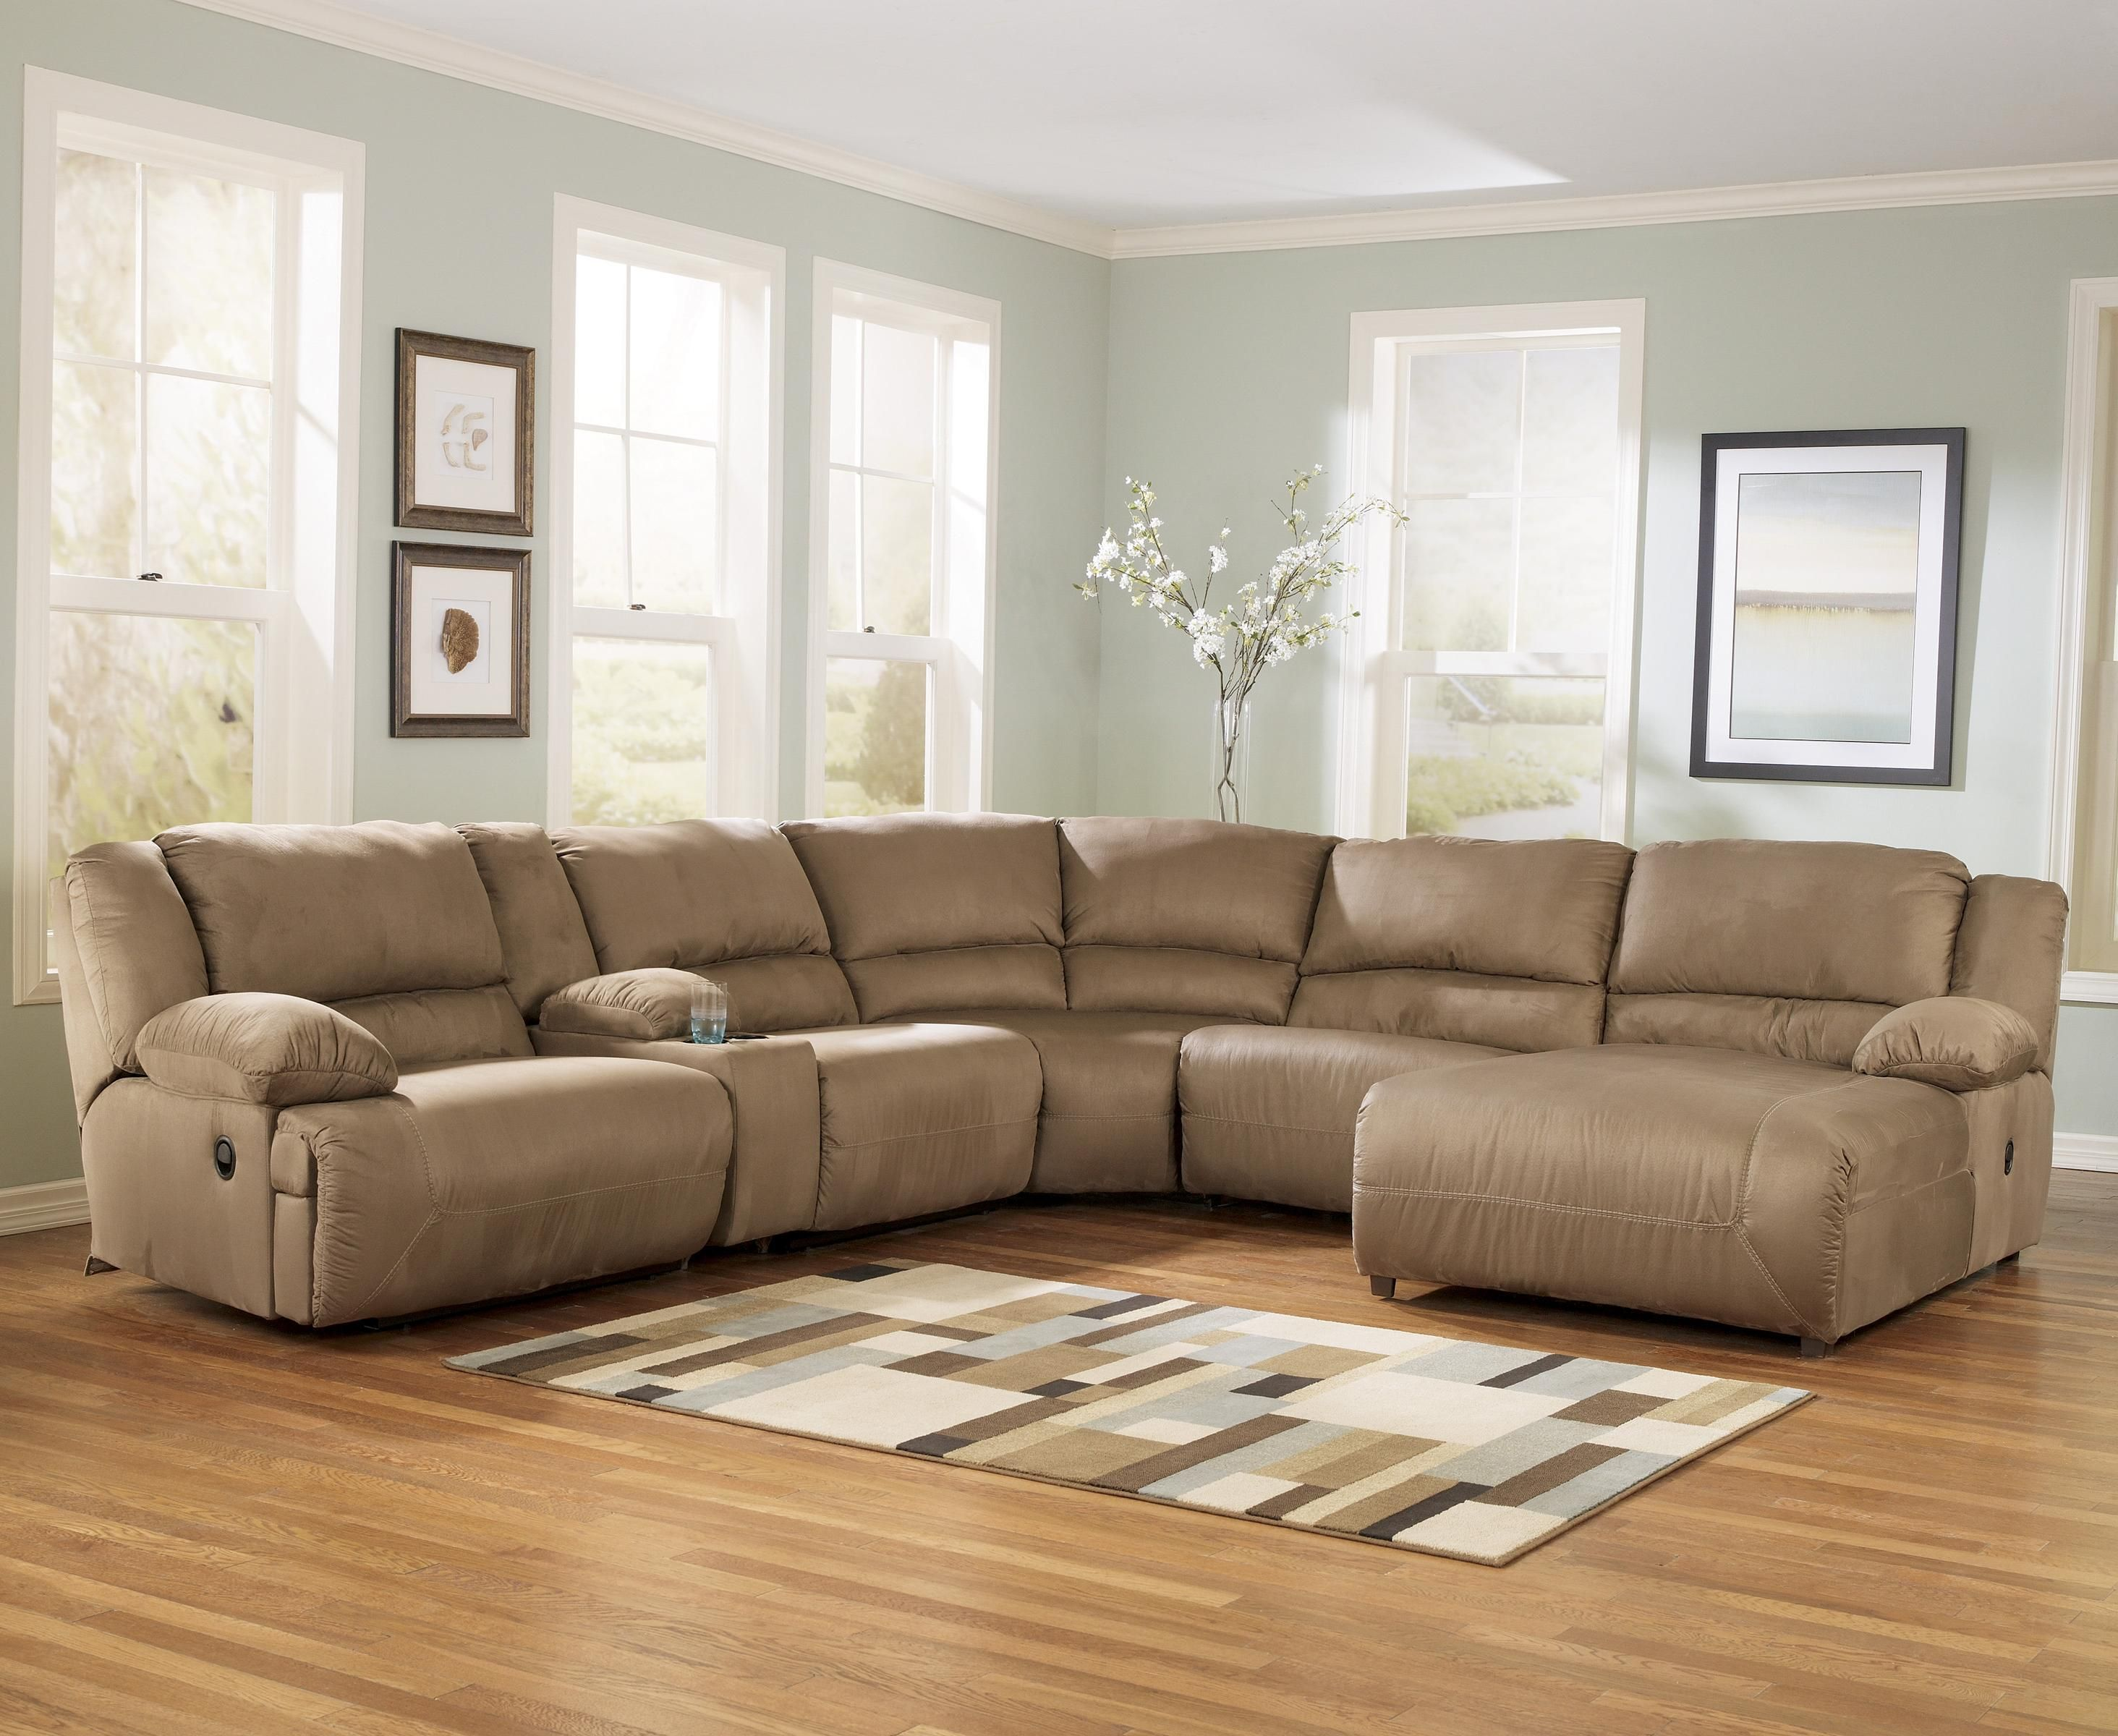 Hogan mocha 6 piece motion sectional with right chaise for Ashley sectional with chaise